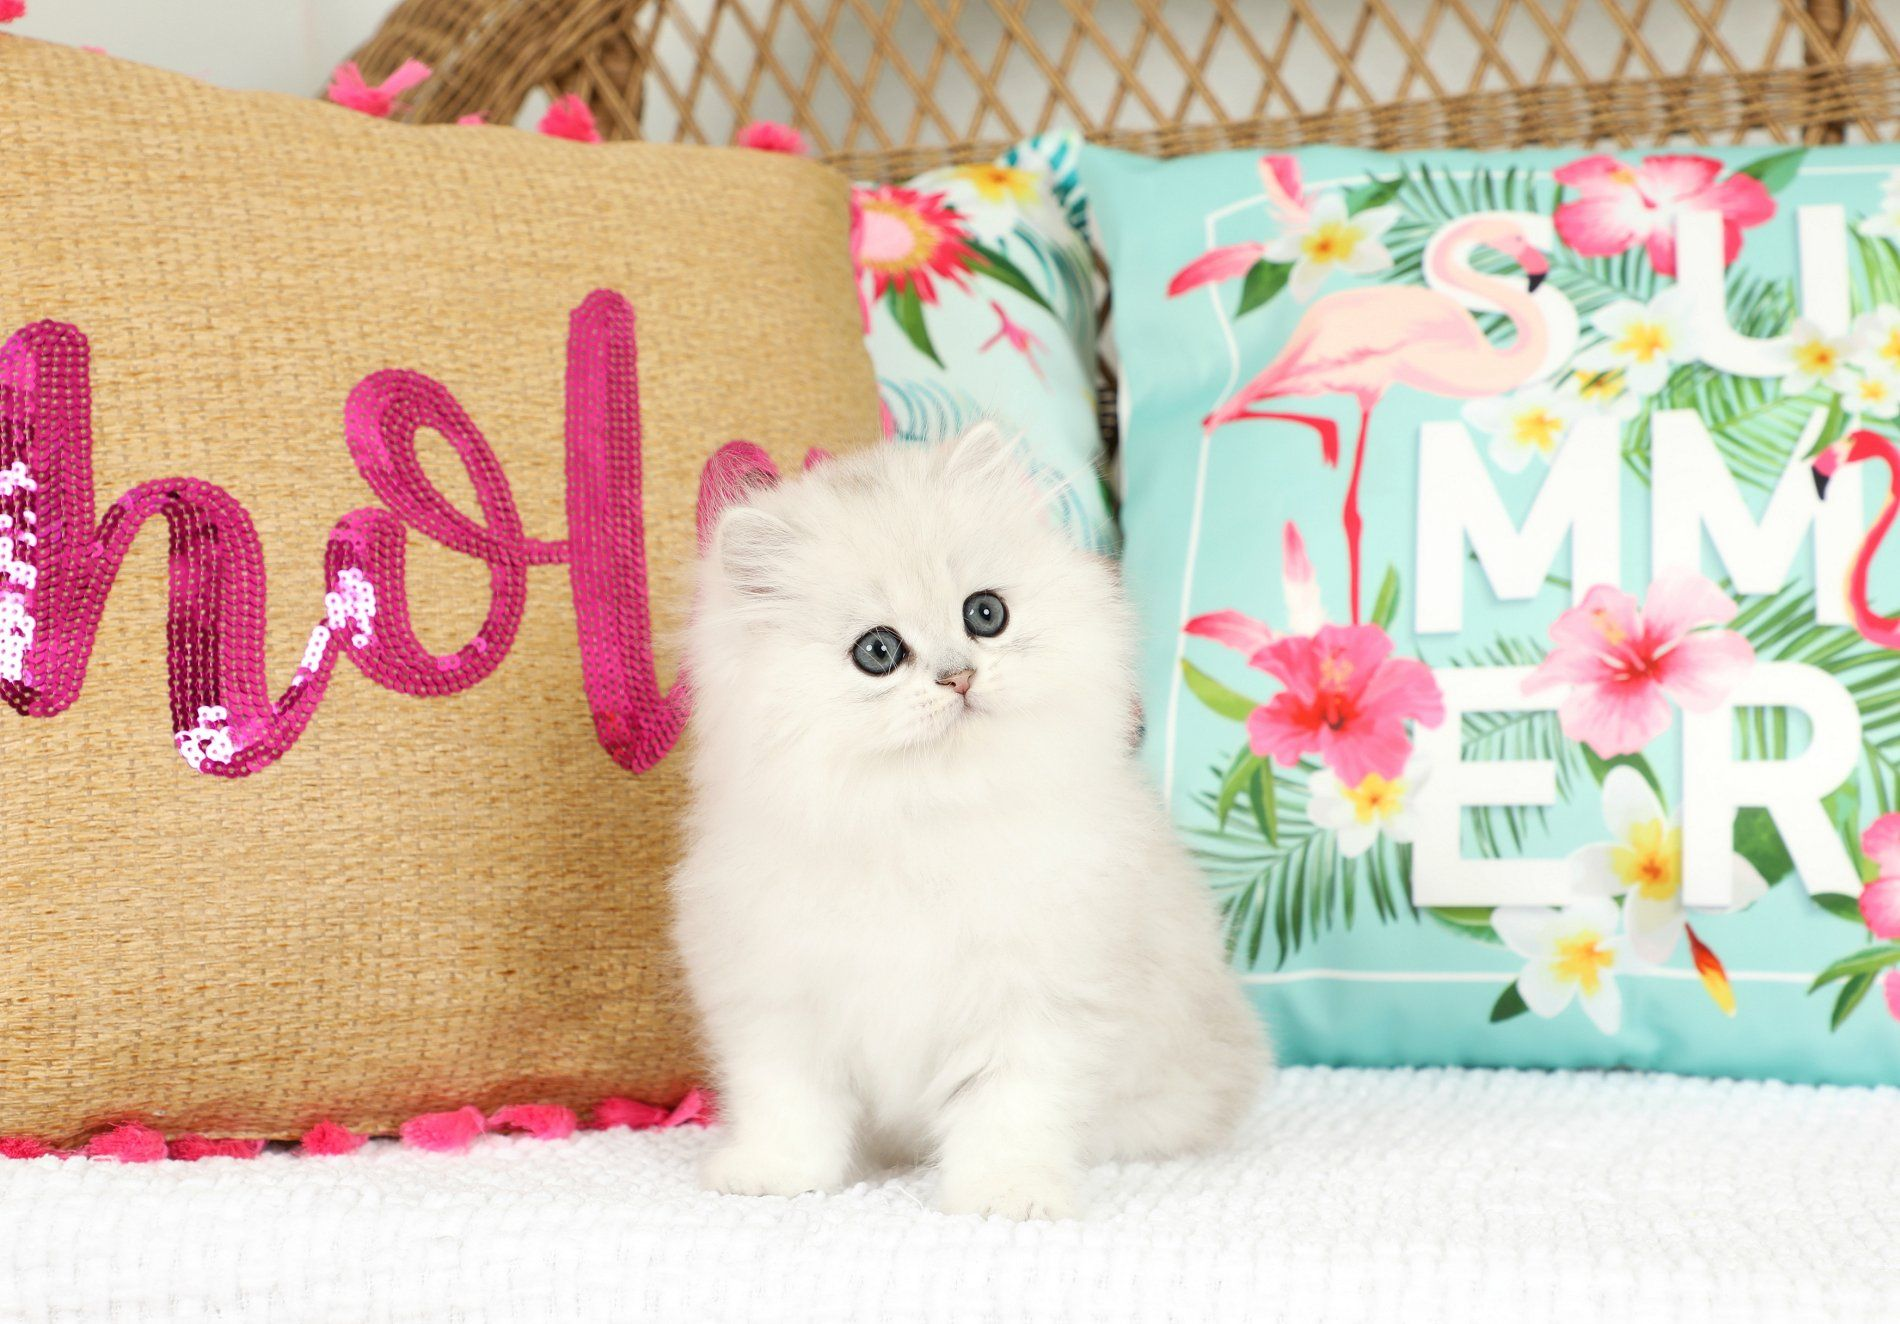 Silver Persian Kittens For Sale Persian kittens for sale